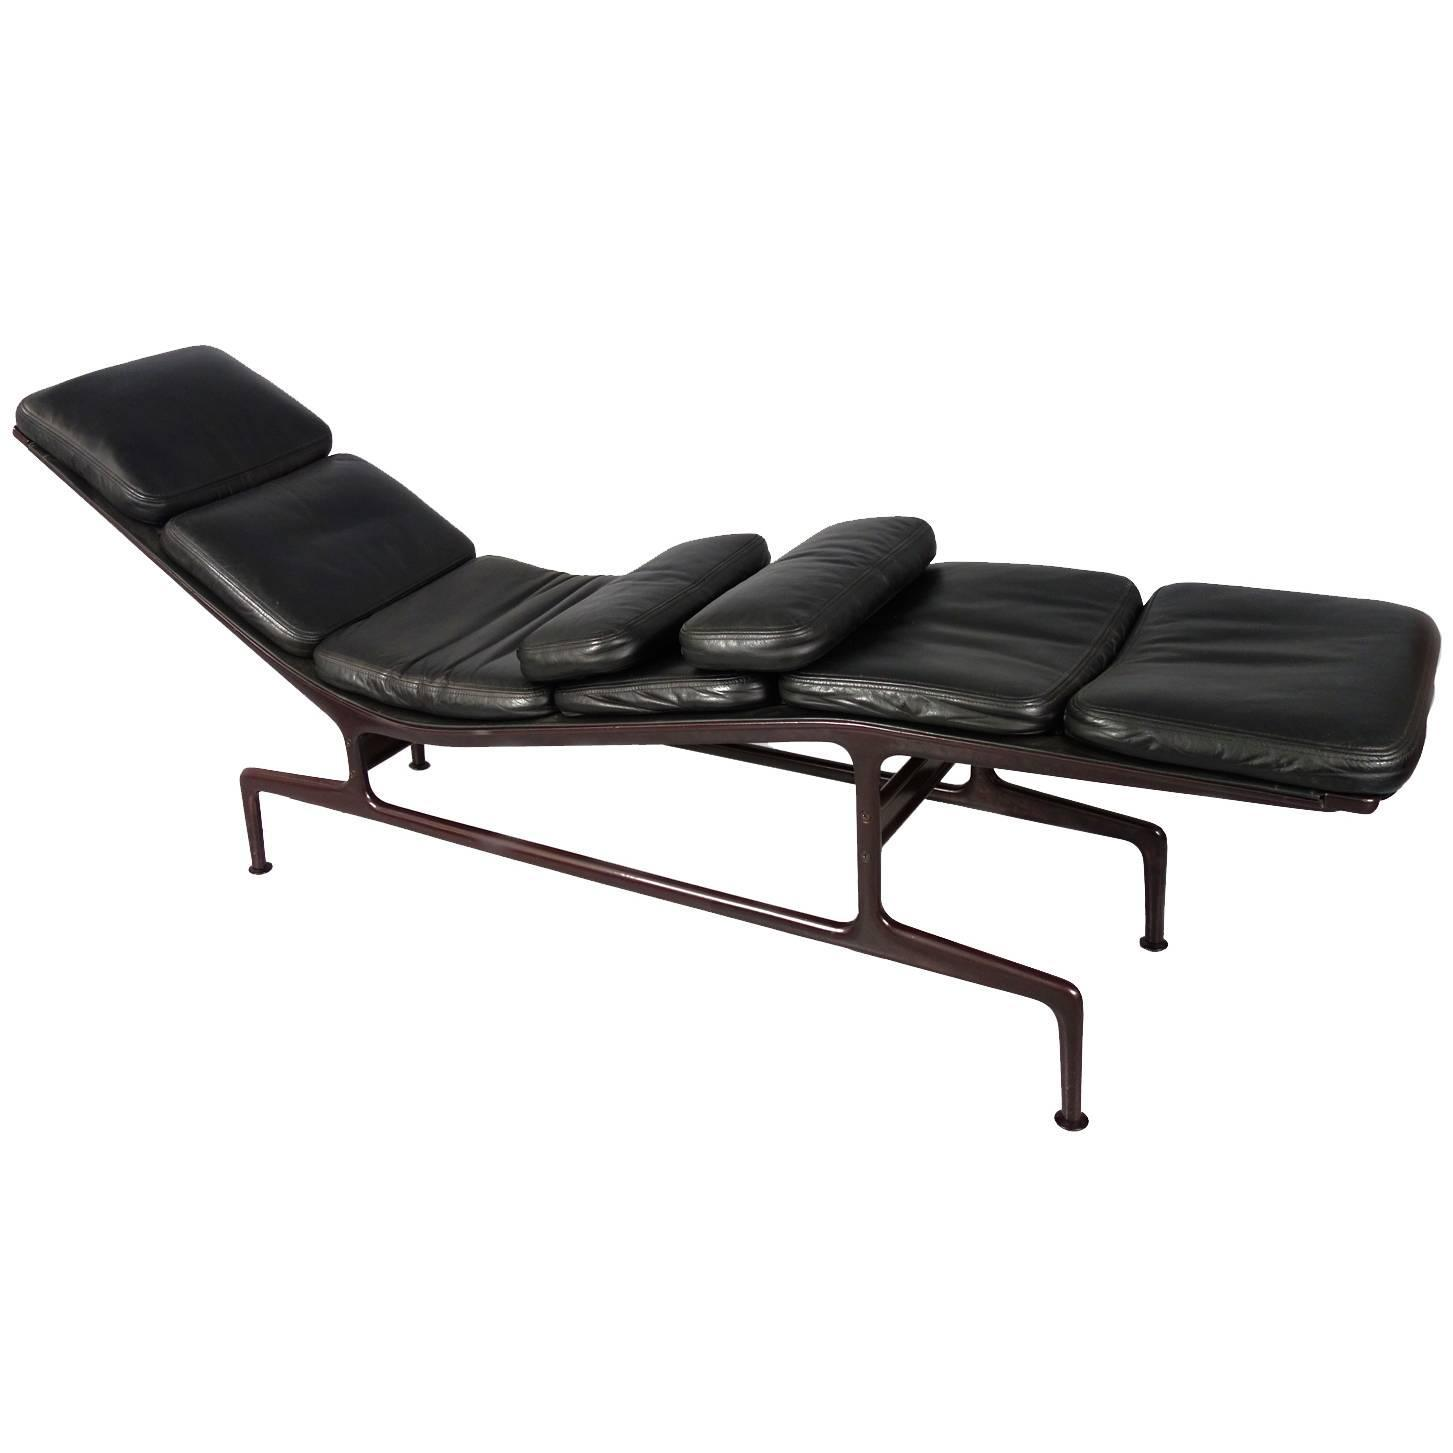 Billy wilder chaise longue by charles and ray eames at 1stdibs - Chaise charles et ray eames ...